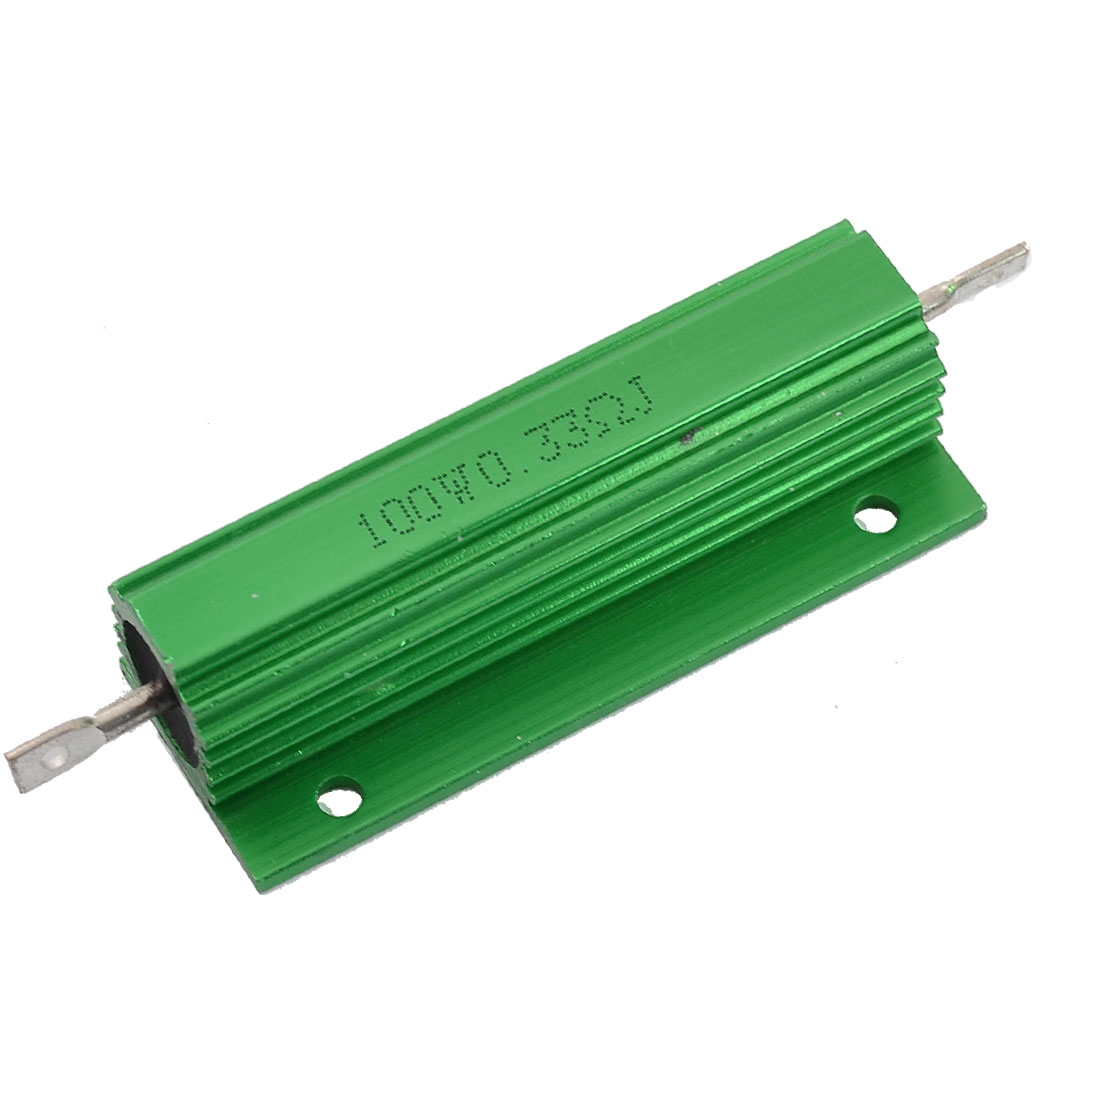 Aluminum Shell Chassis Mounted 100W Watt 0.33 Ohm 5% Wirewound Resistor